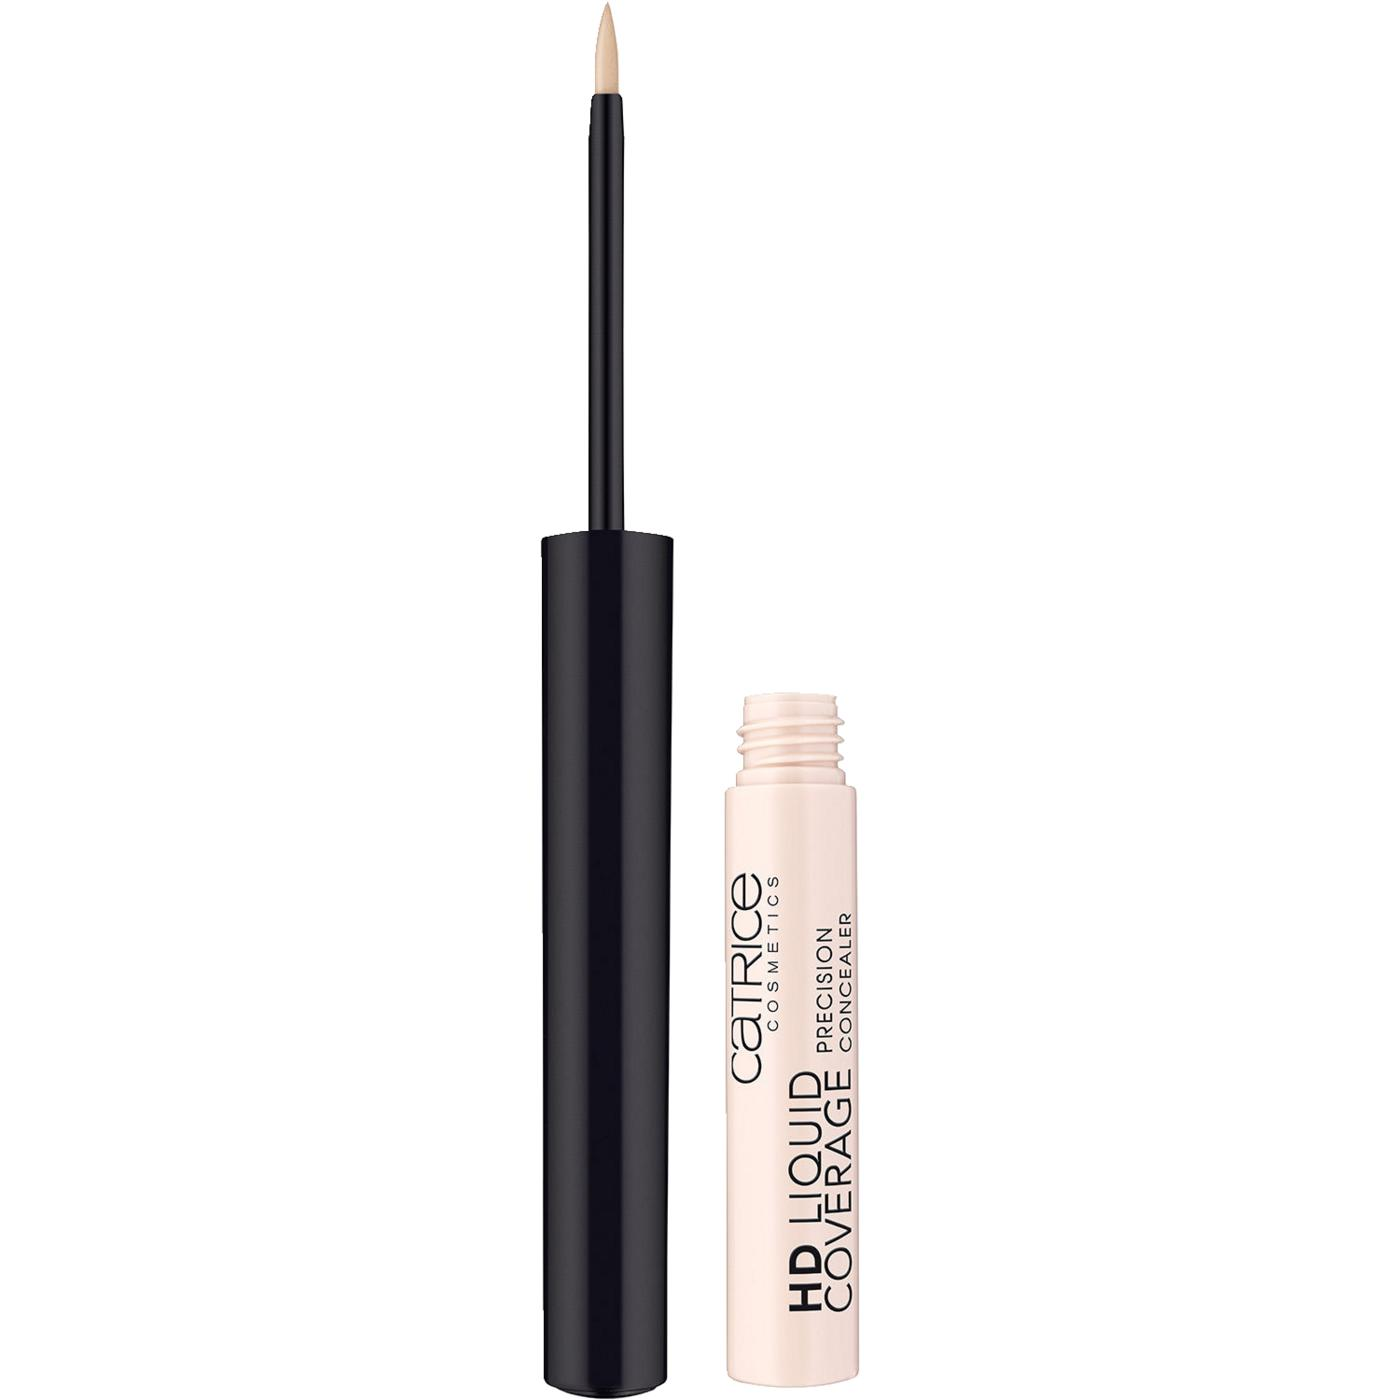 Catrice HD Liquid Coverage Precision Concealer 010